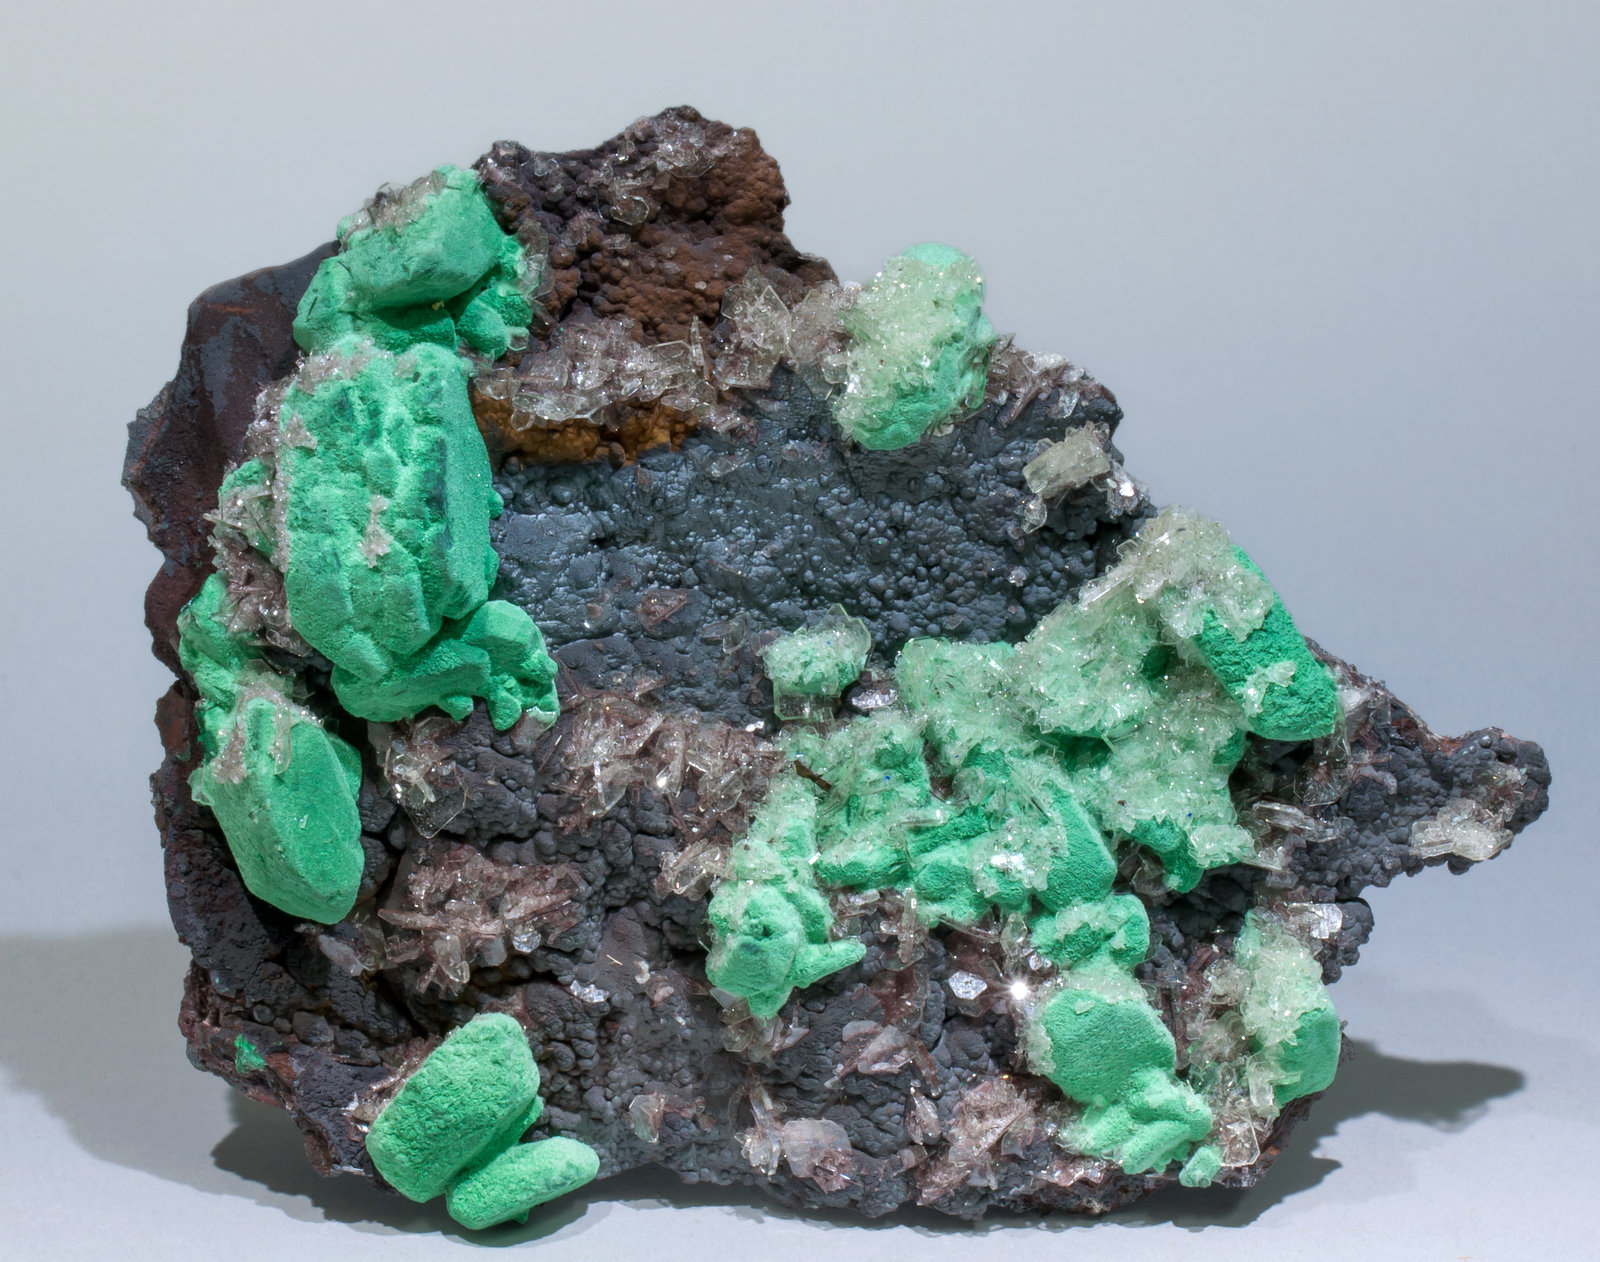 specimens/s_imagesAC8/Malachite-TJ50AC8f.jpg